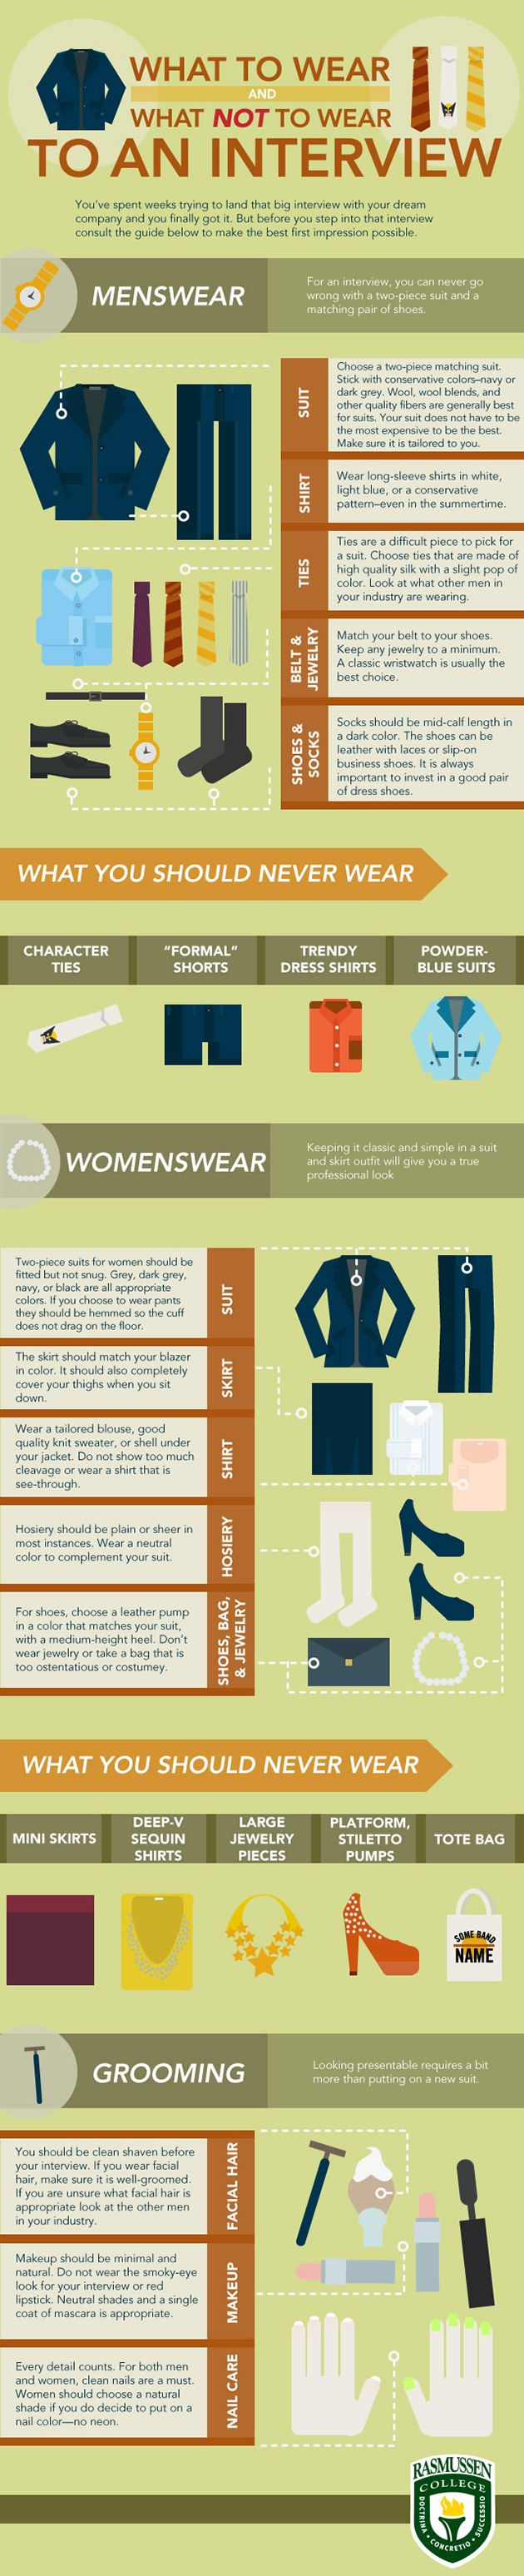 how-to-dress-for-an-interview